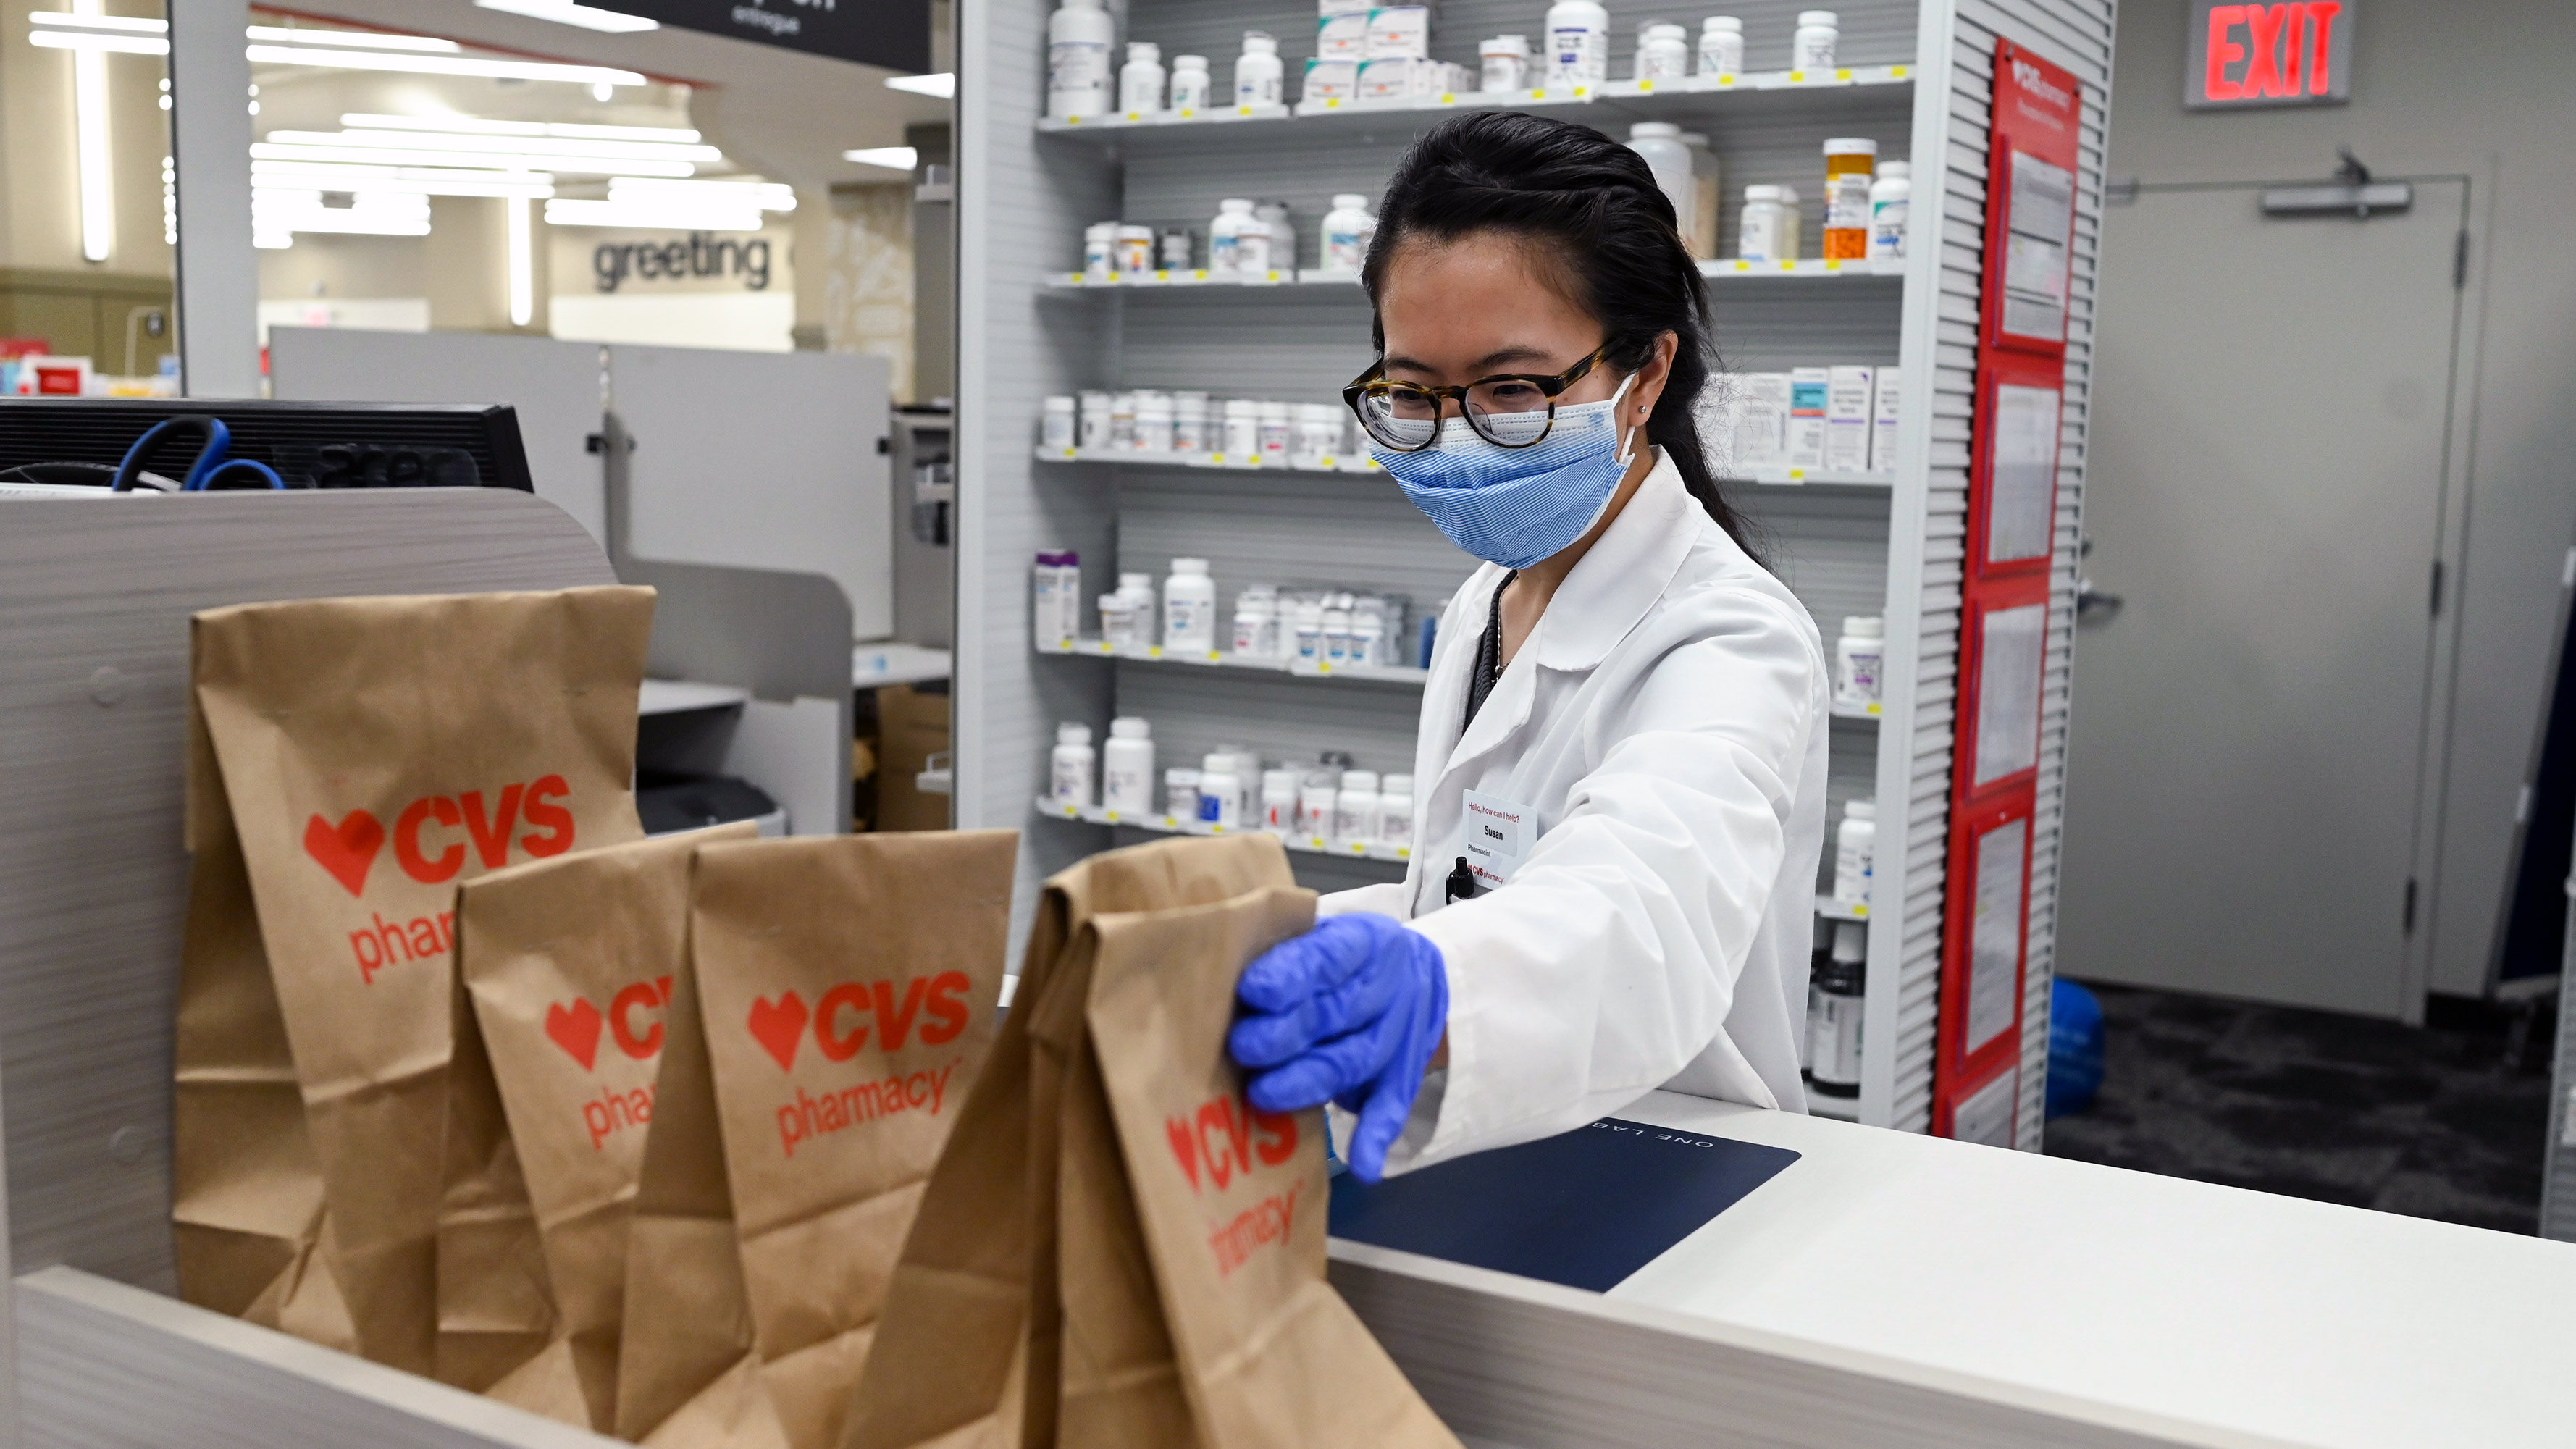 A CVS pharmacist prepares prescriptions while wearing personal protective equipment (PPE).